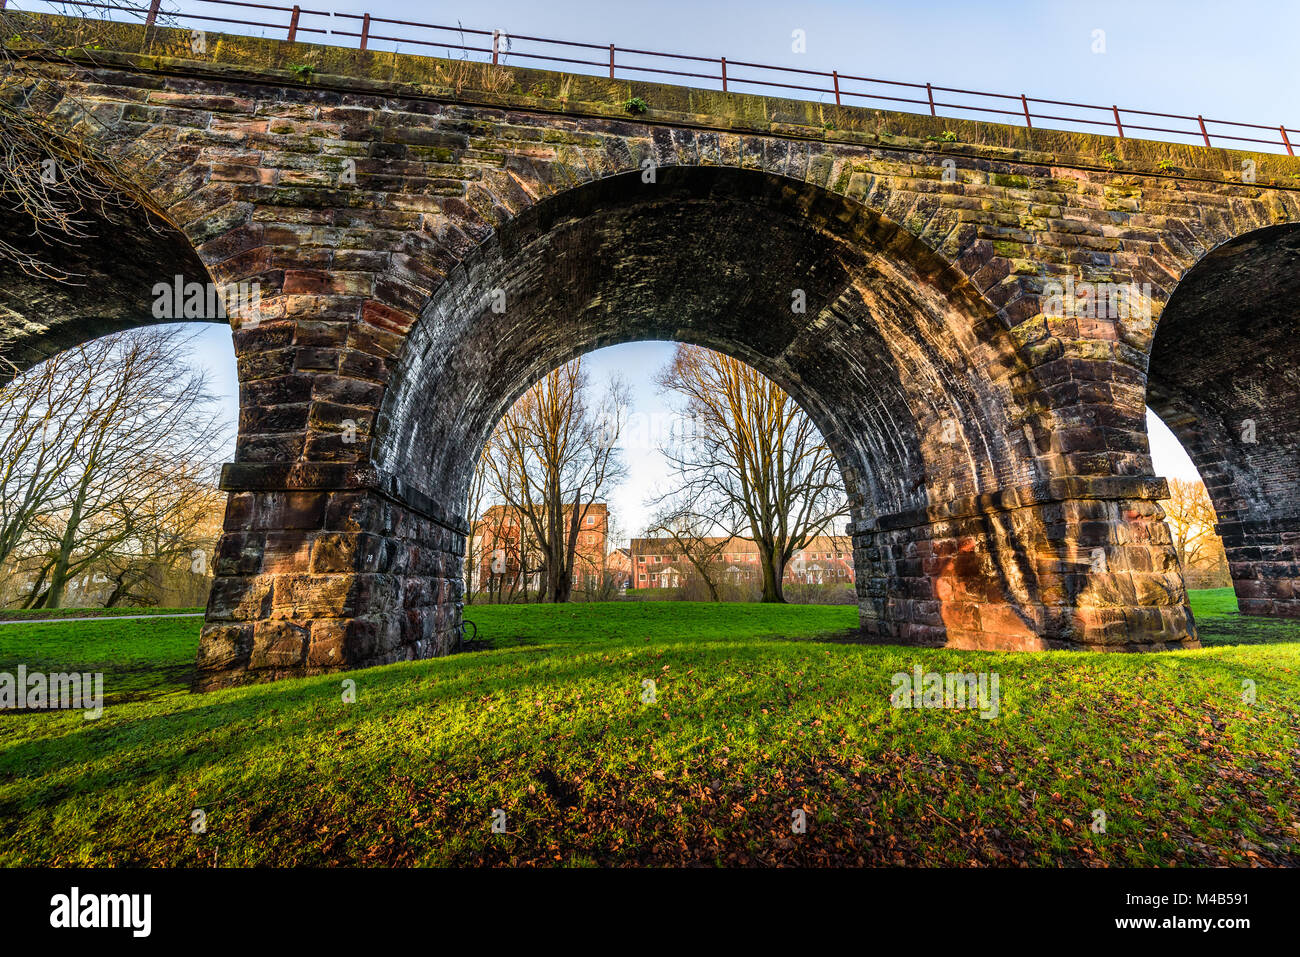 Old Victorian railway viaduct arches framing trees and new houses in Northwich, Cheshire, UK. - Stock Image